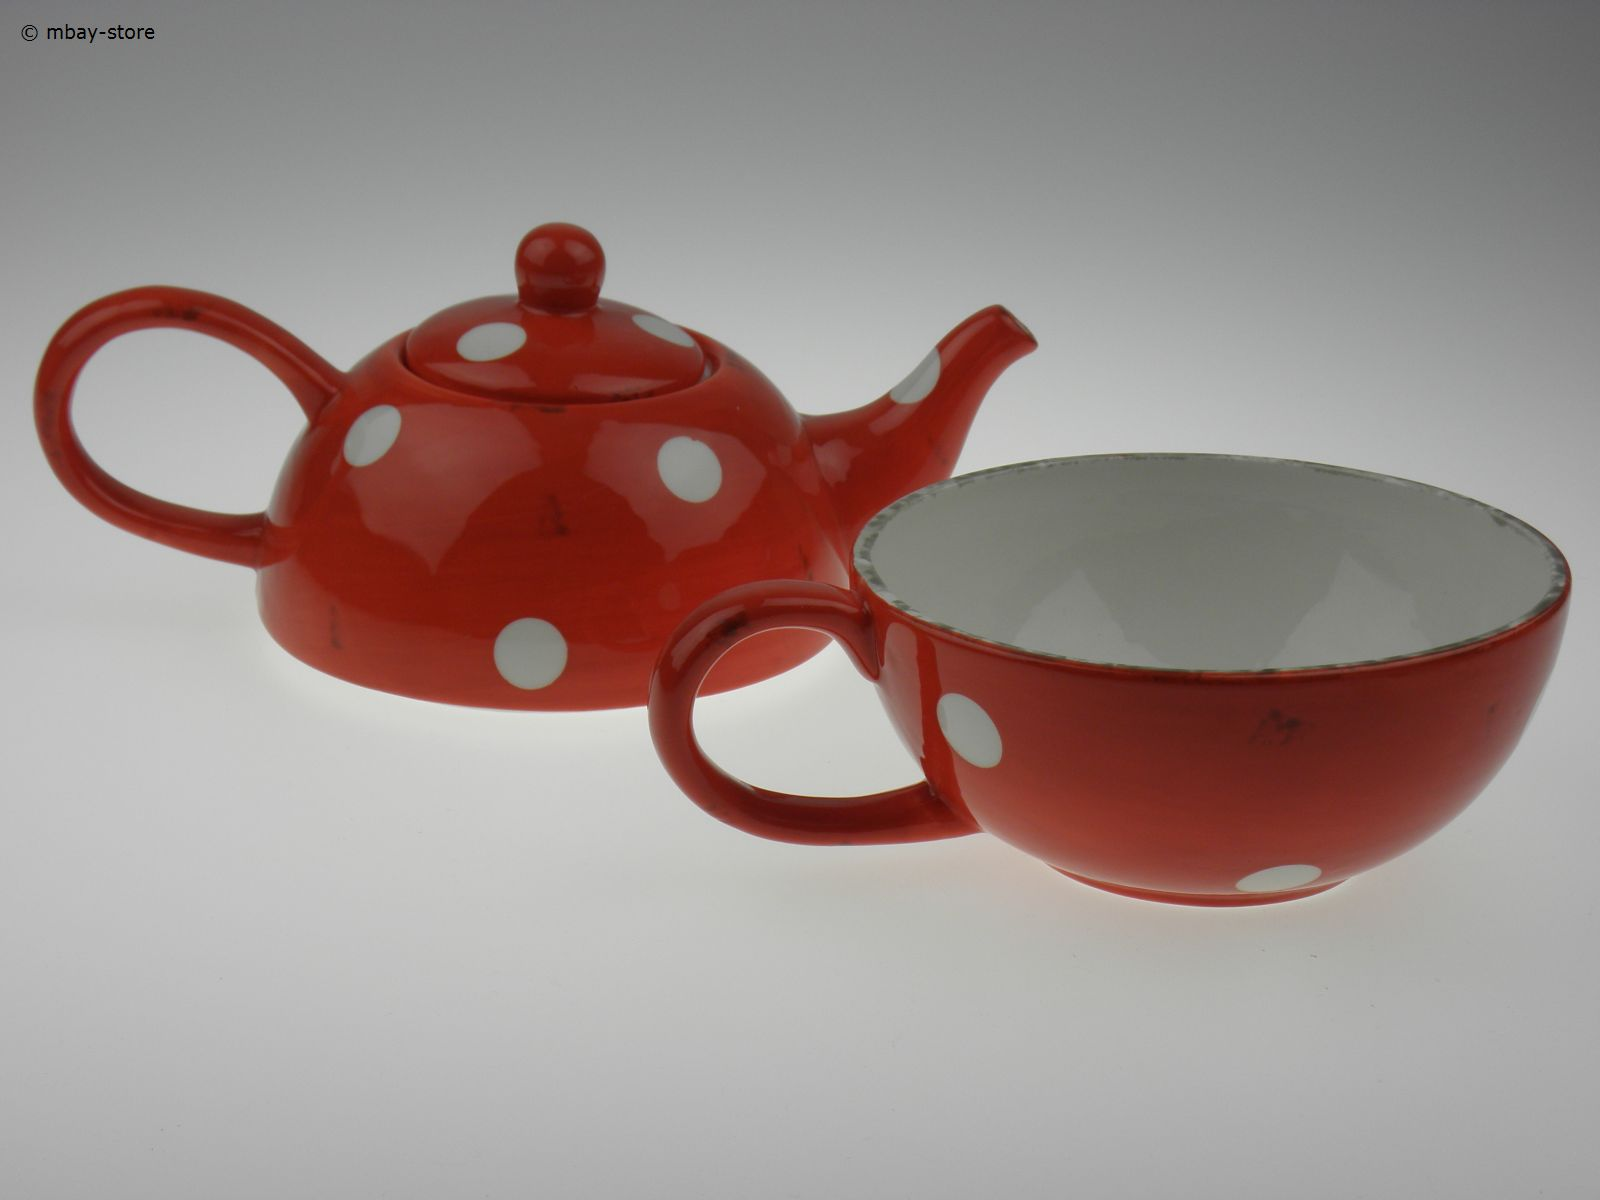 Teekanne Rot Set Teekanne And Tasse Kanne Teetasse Rot And Punkte Tea For